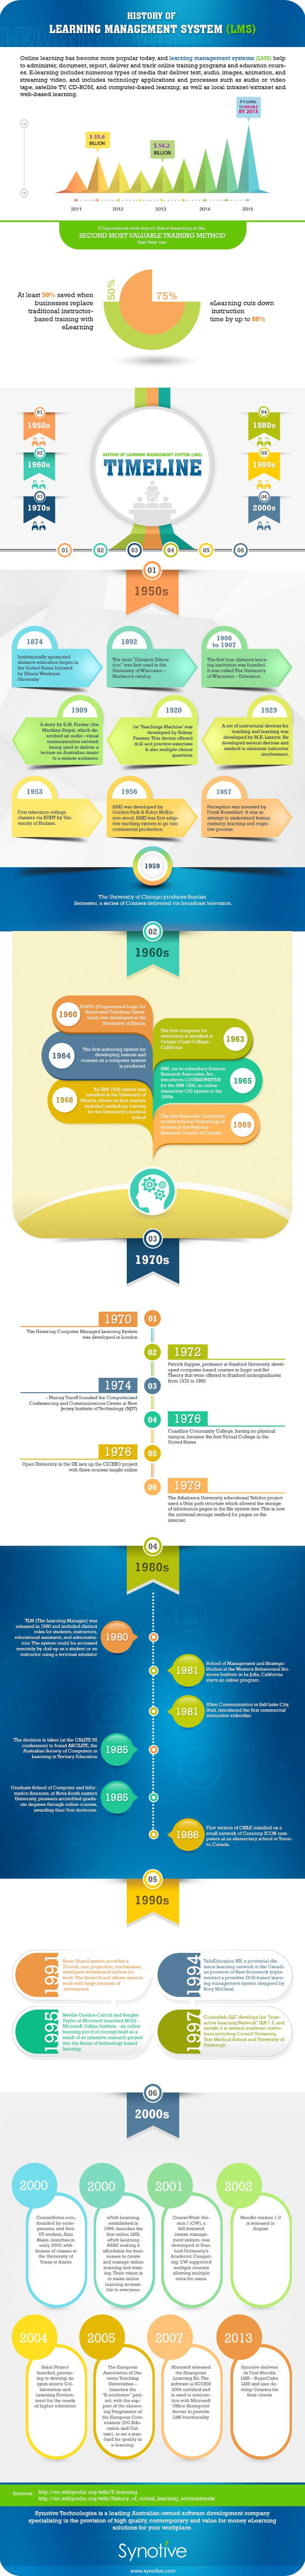 History of Learning Management System